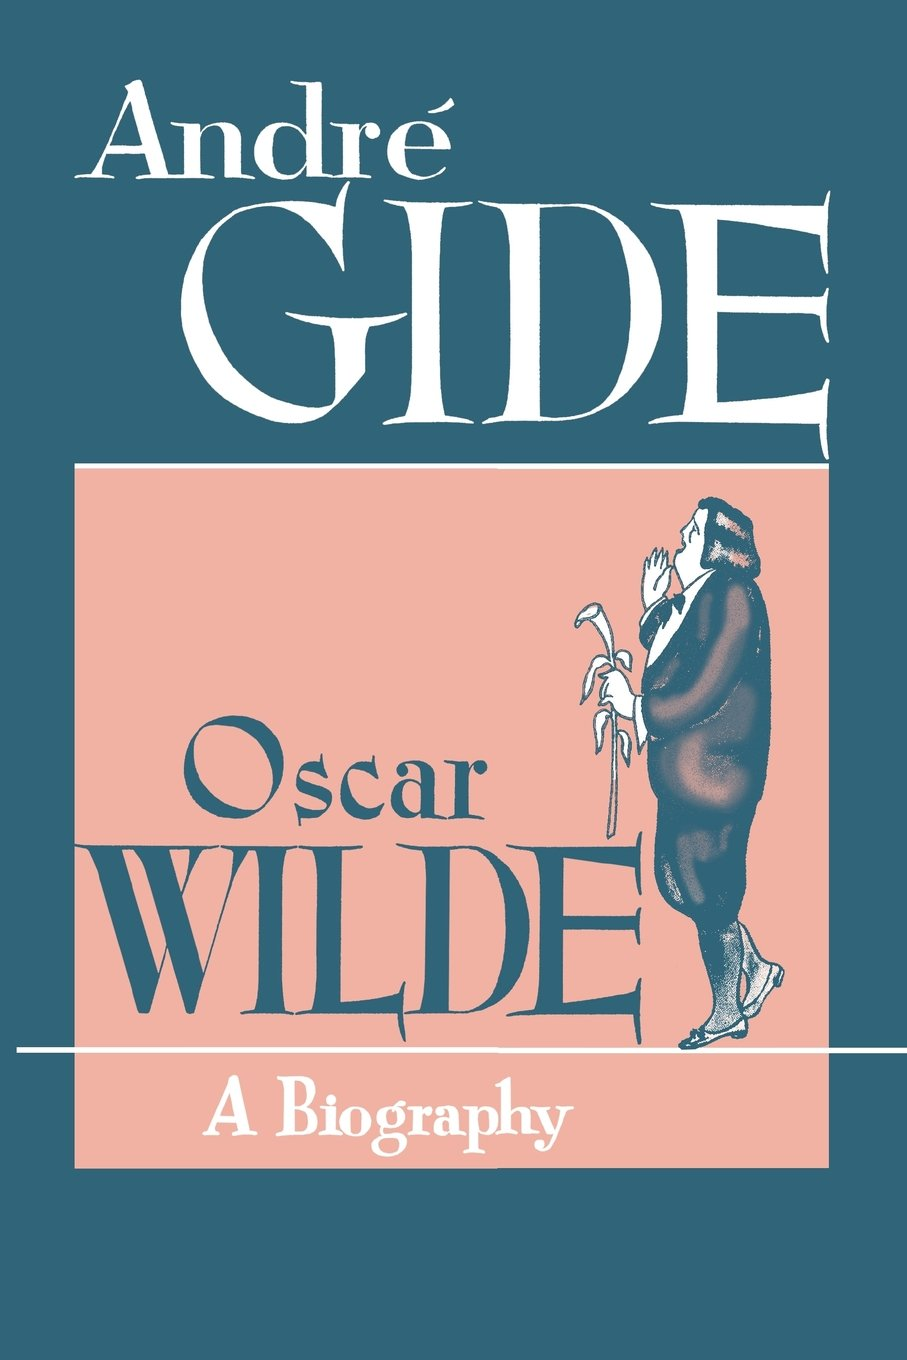 Oscar wilde a biography andr gide 9780806529707 amazon books nvjuhfo Images